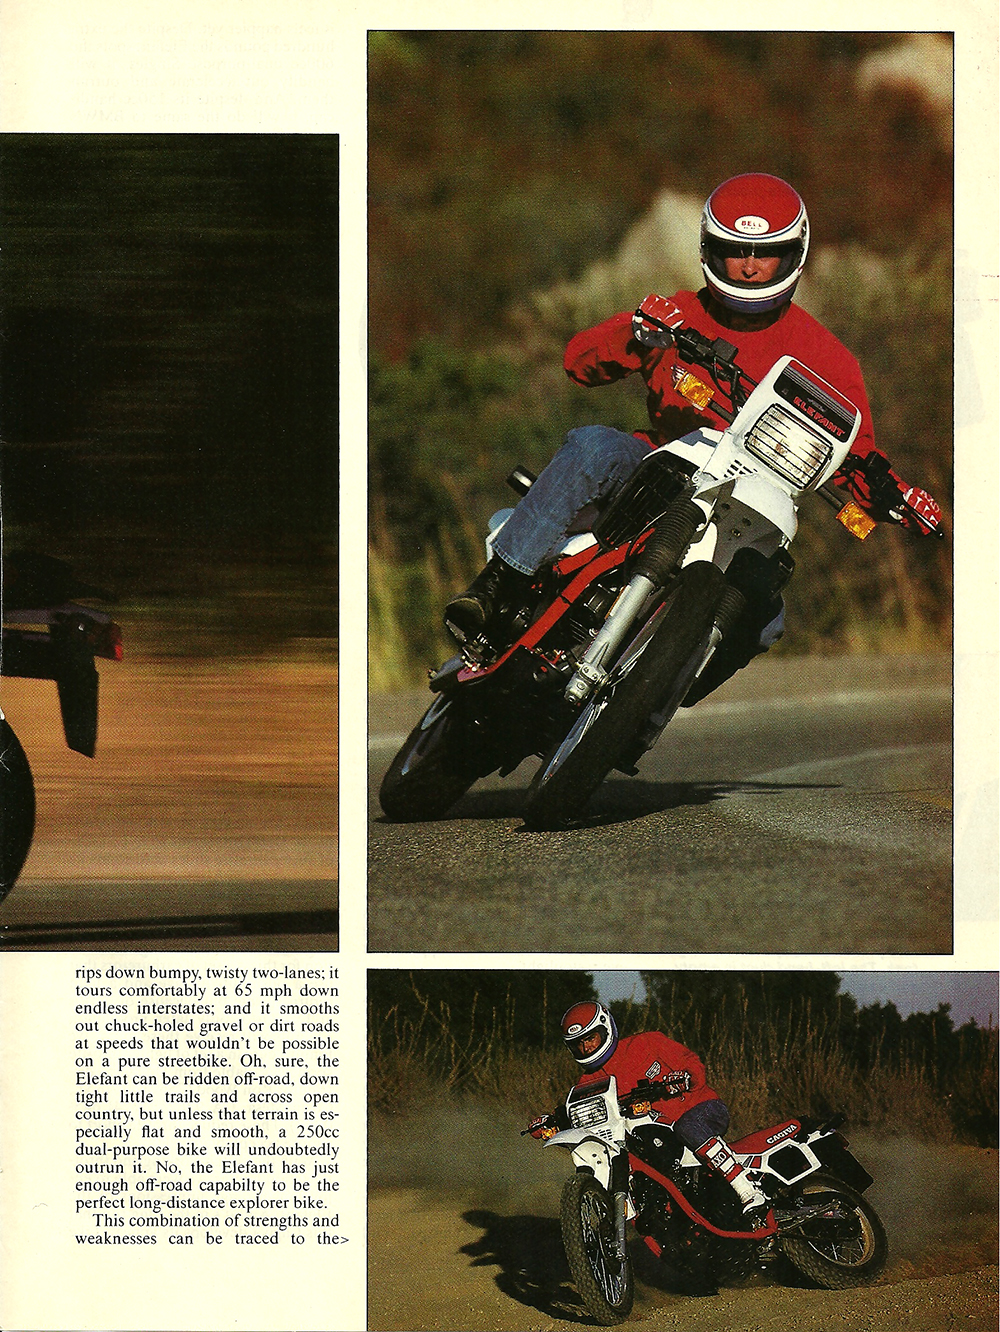 1985 Cagiva 650 Elefant road test 02.jpg